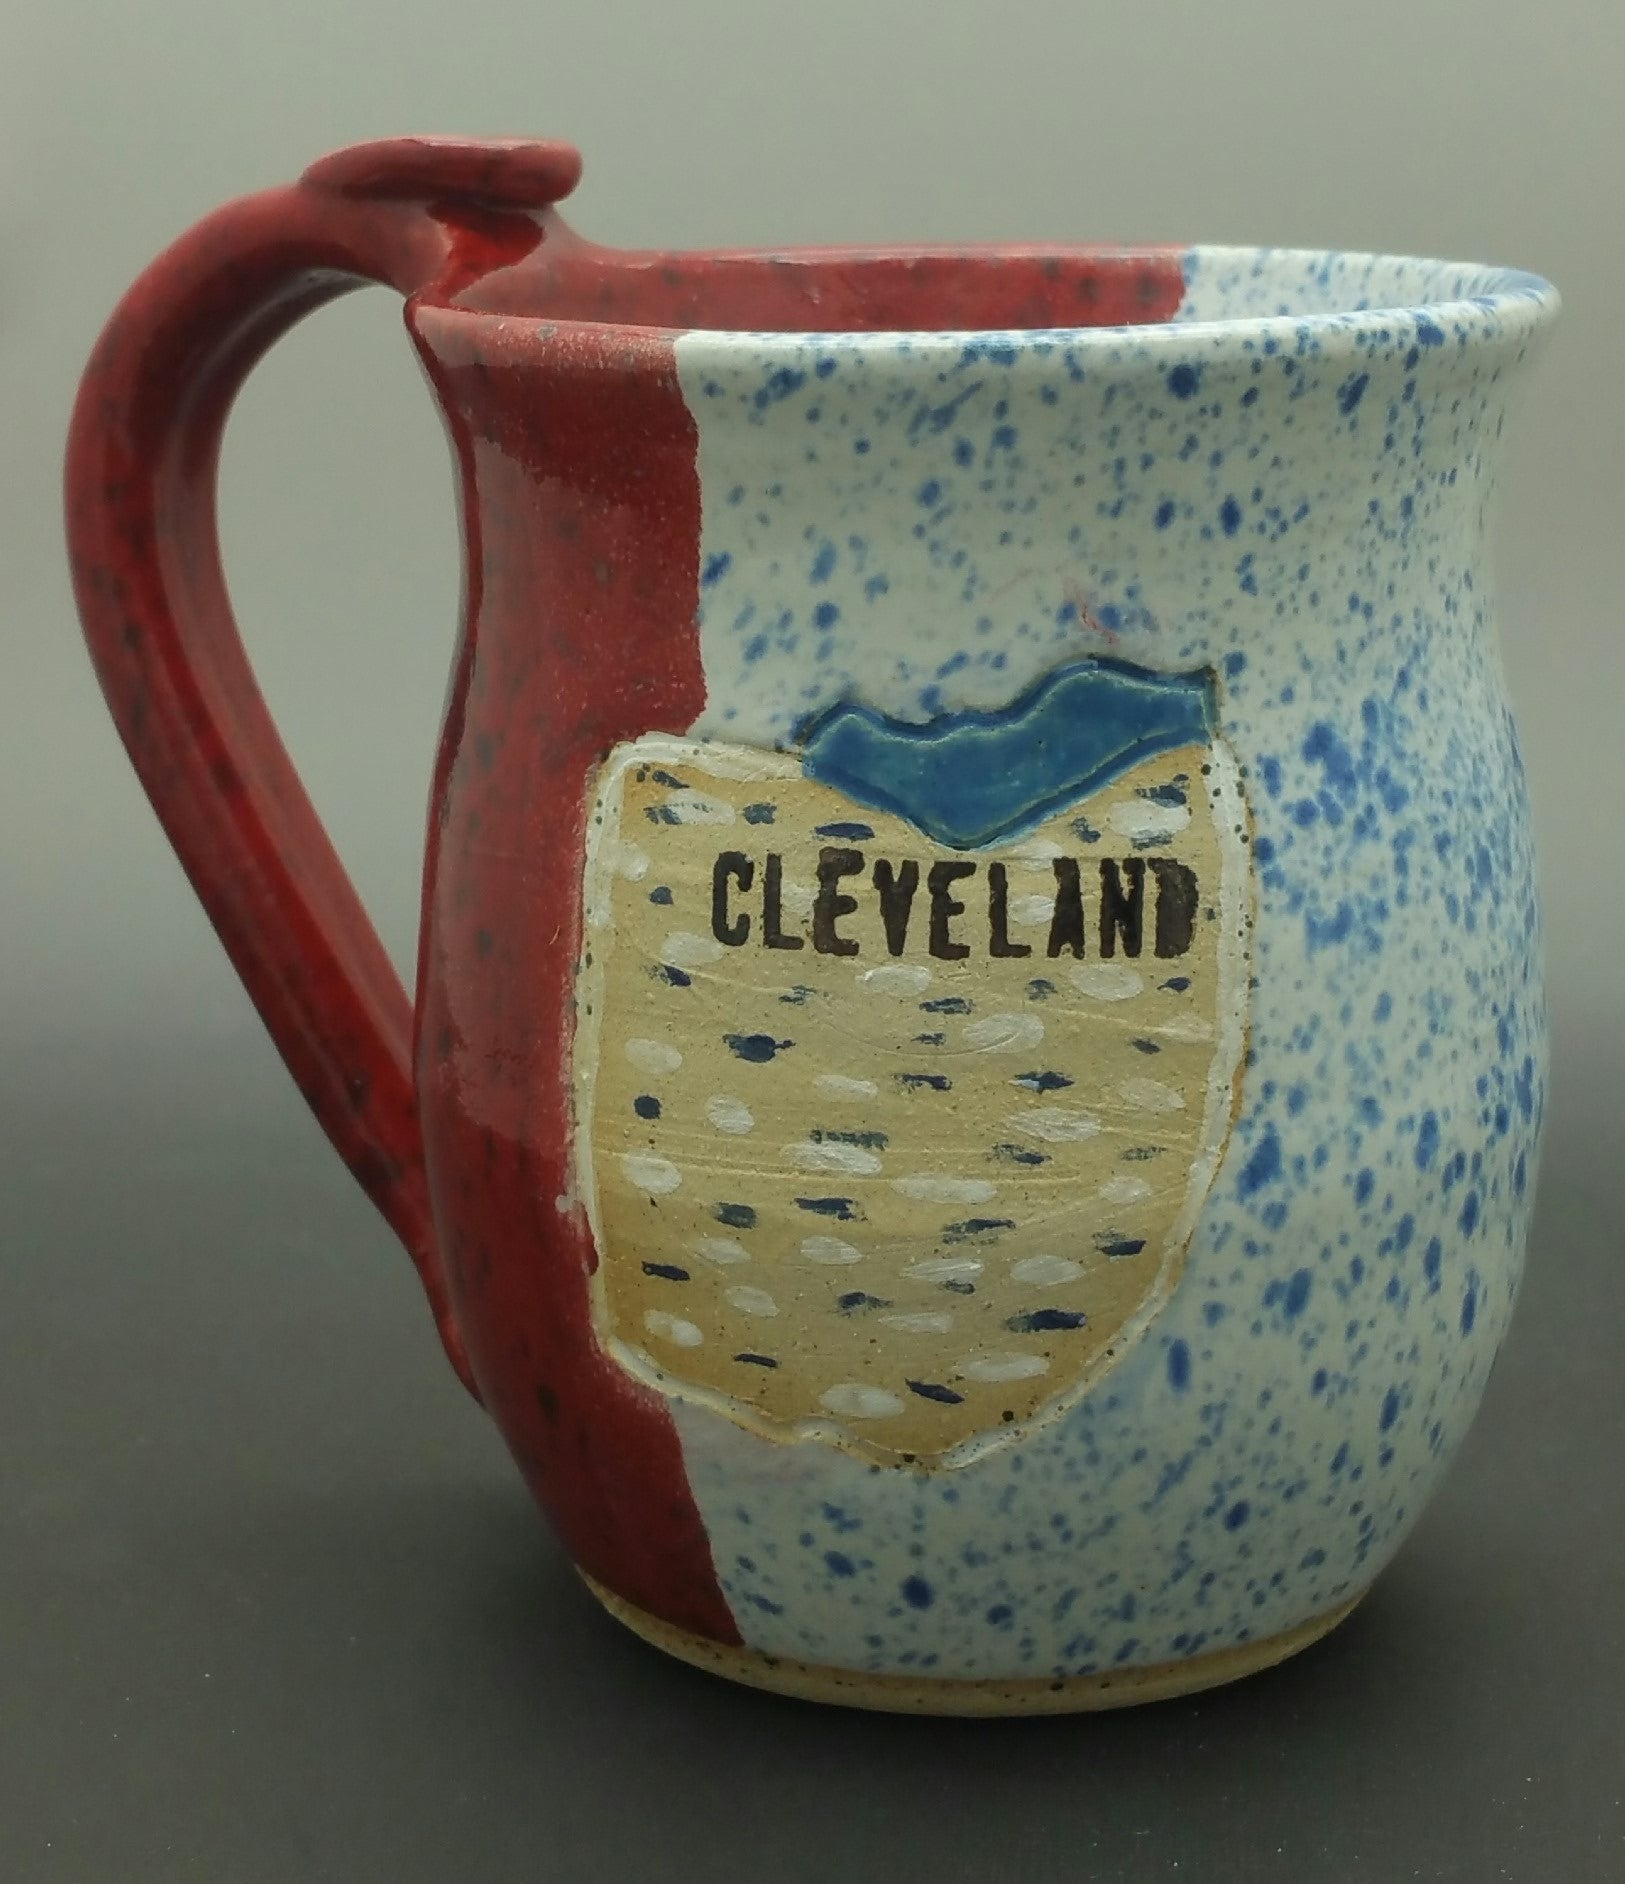 Cleveland Hand Thrown Ceramic Mug